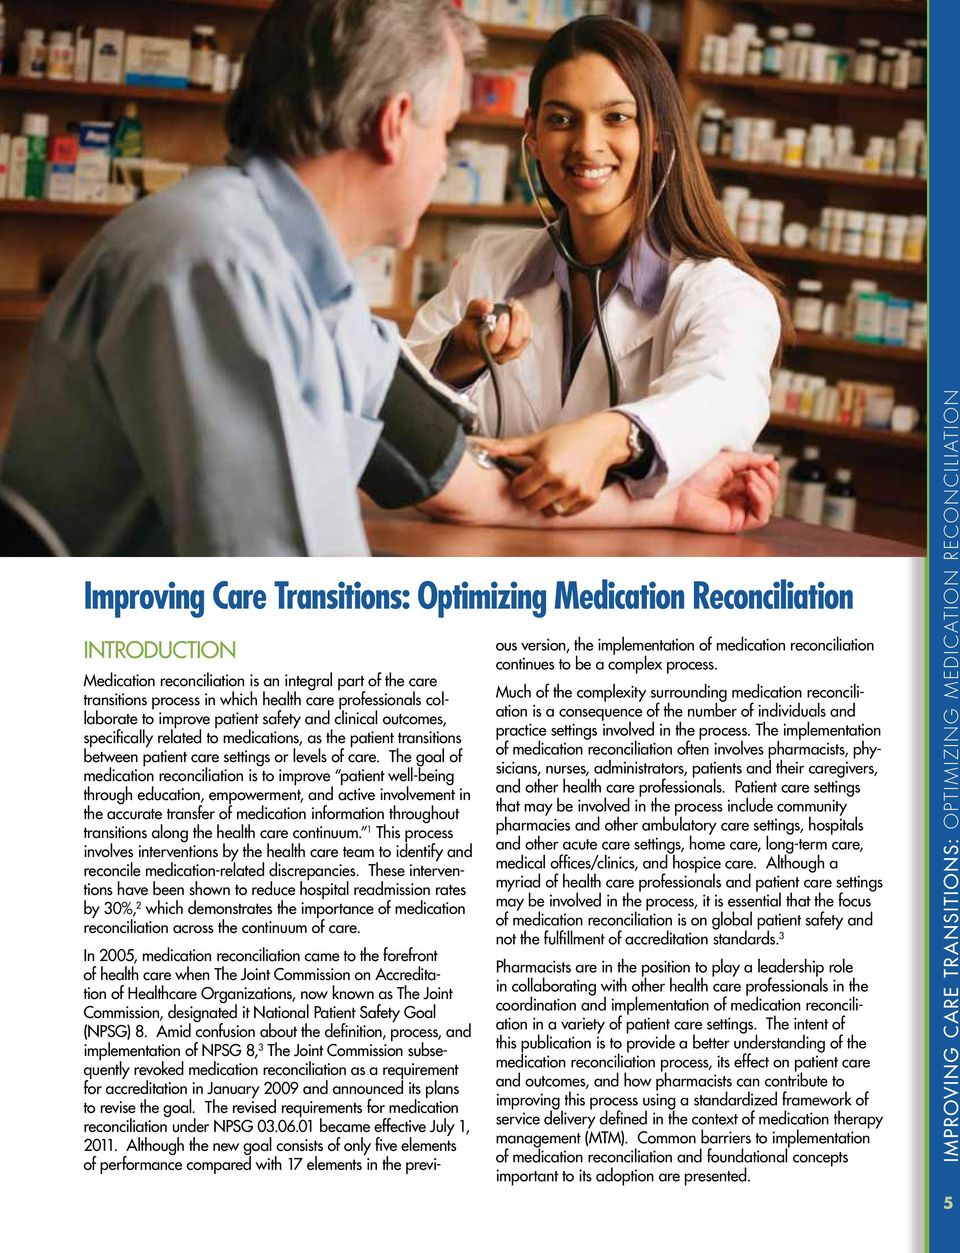 The goal of medication reconciliation is to improve patient well-being through education, empowerment, and active involvement in the accurate transfer of medication information throughout transitions